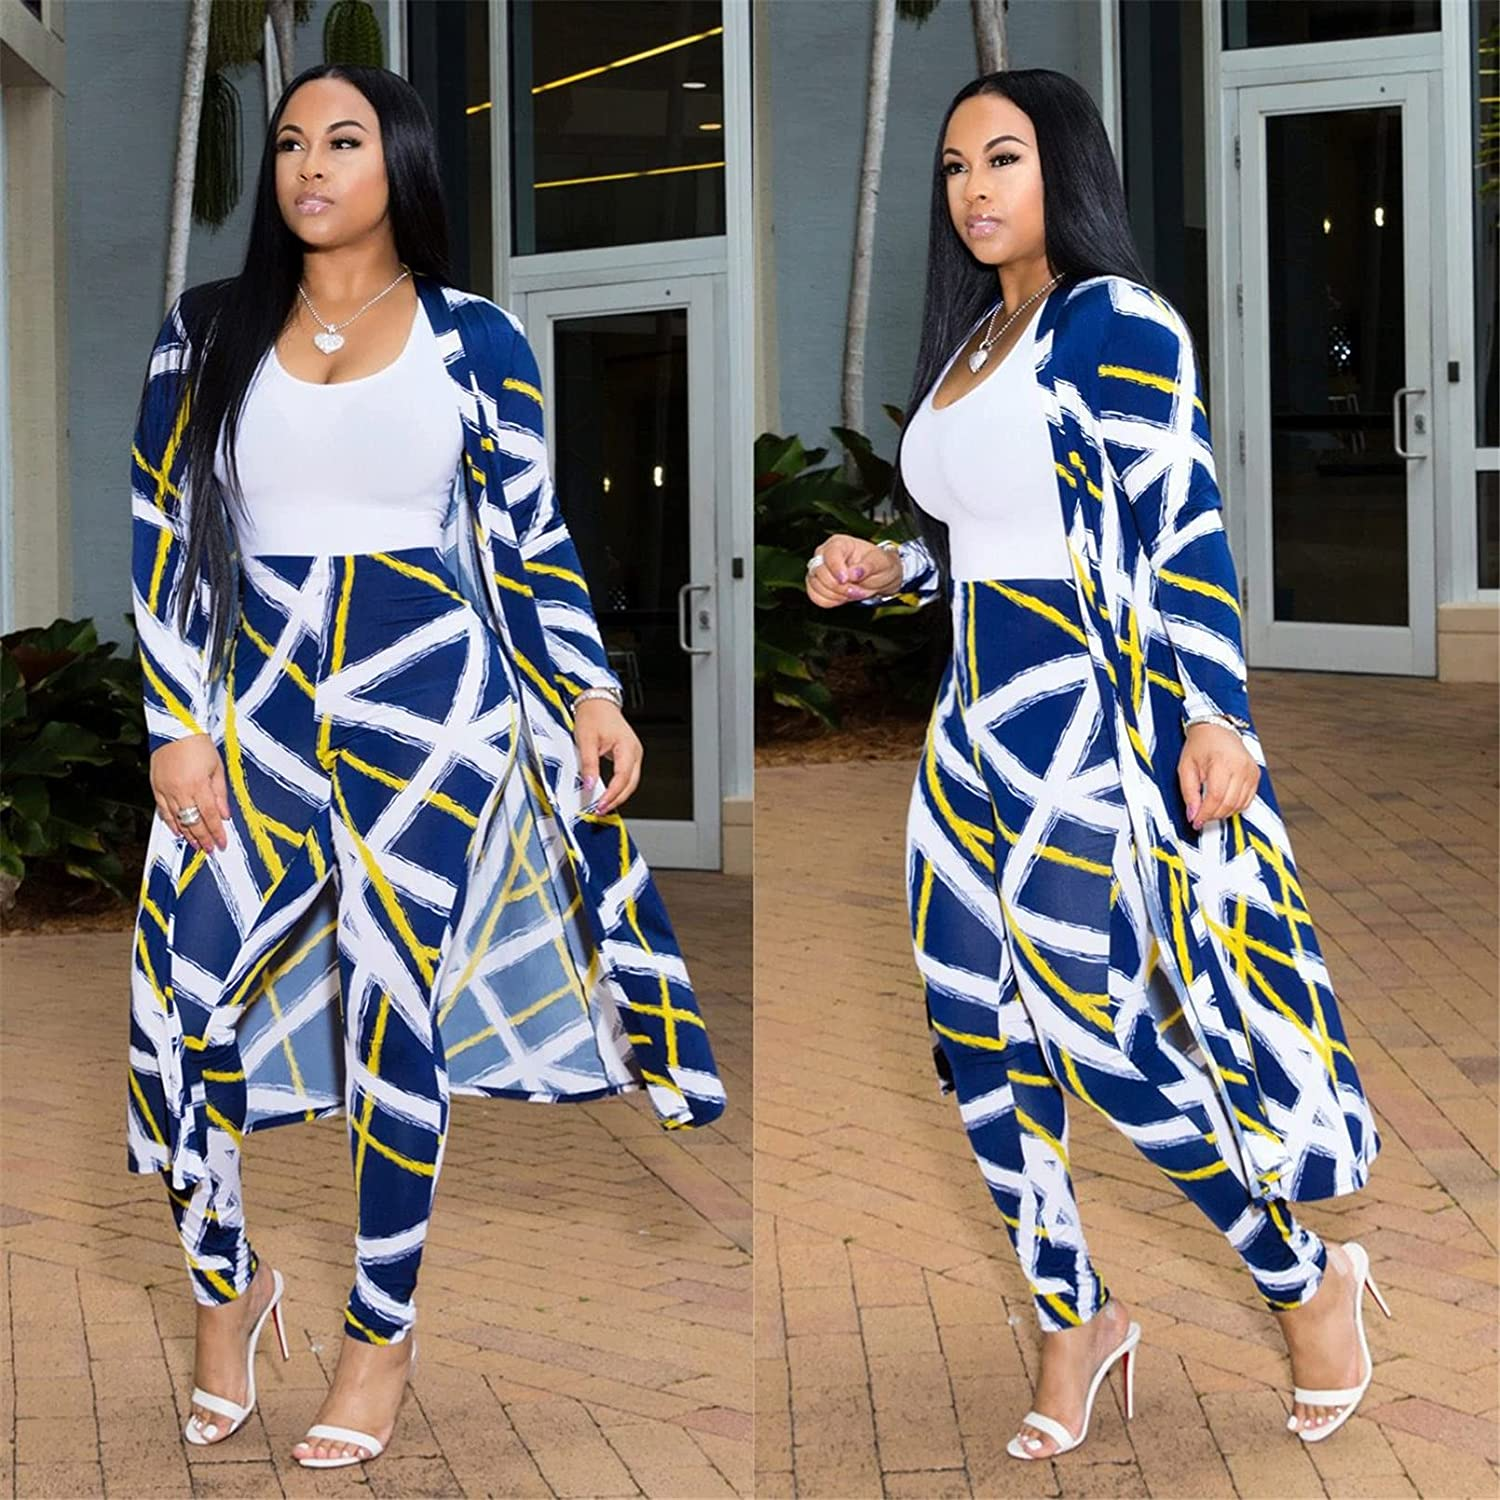 Autumn Winter Sexy Printed Two Piece Matching Sets Women Long Cardigan Tops+Pants Suits